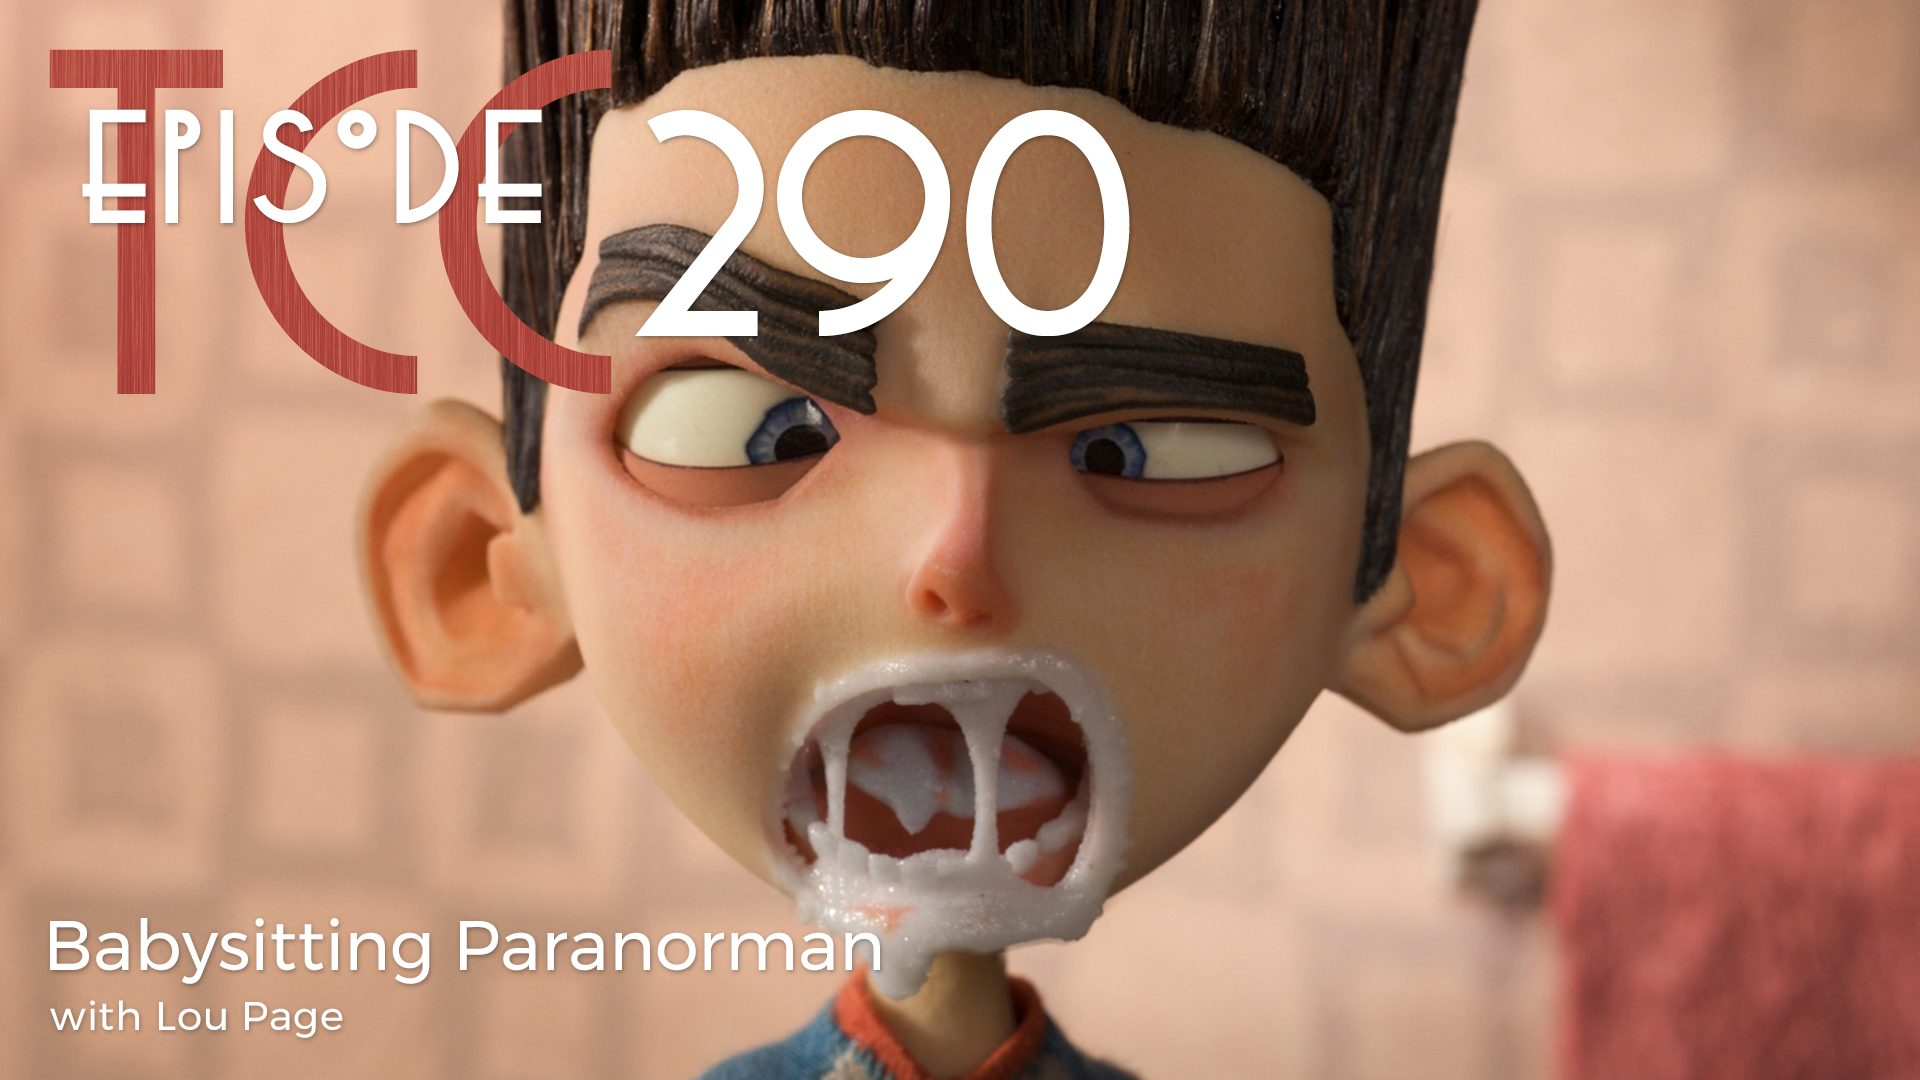 The Citadel Cafe 290: Babysitting Paranorman